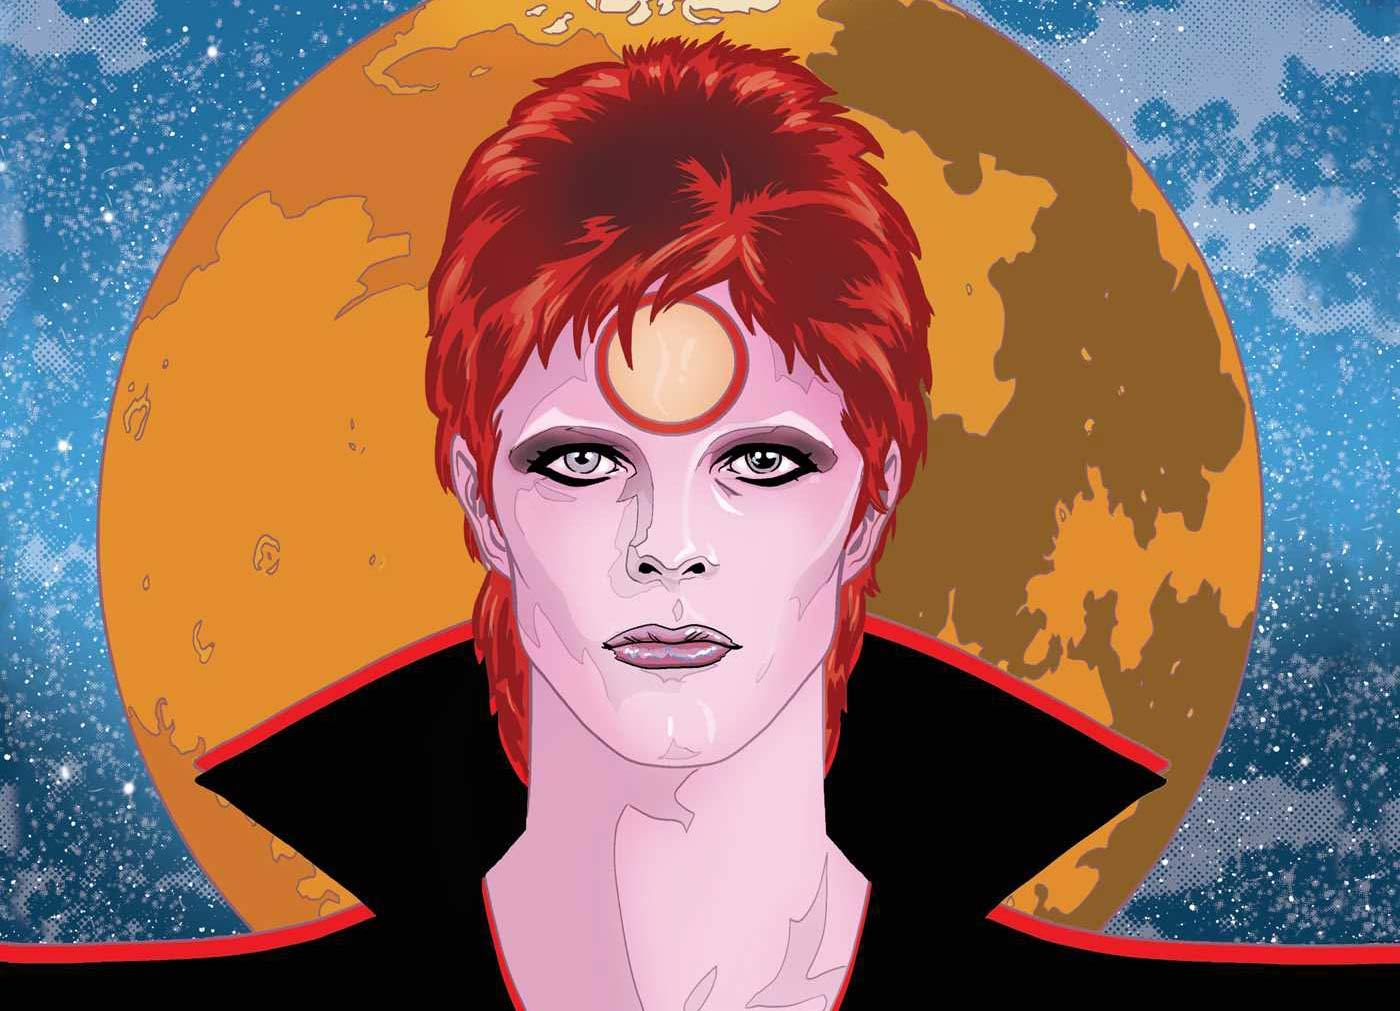 david bowie hq graphic novel the story of ziggy stardust quadrinhos noticias revista ambrosia